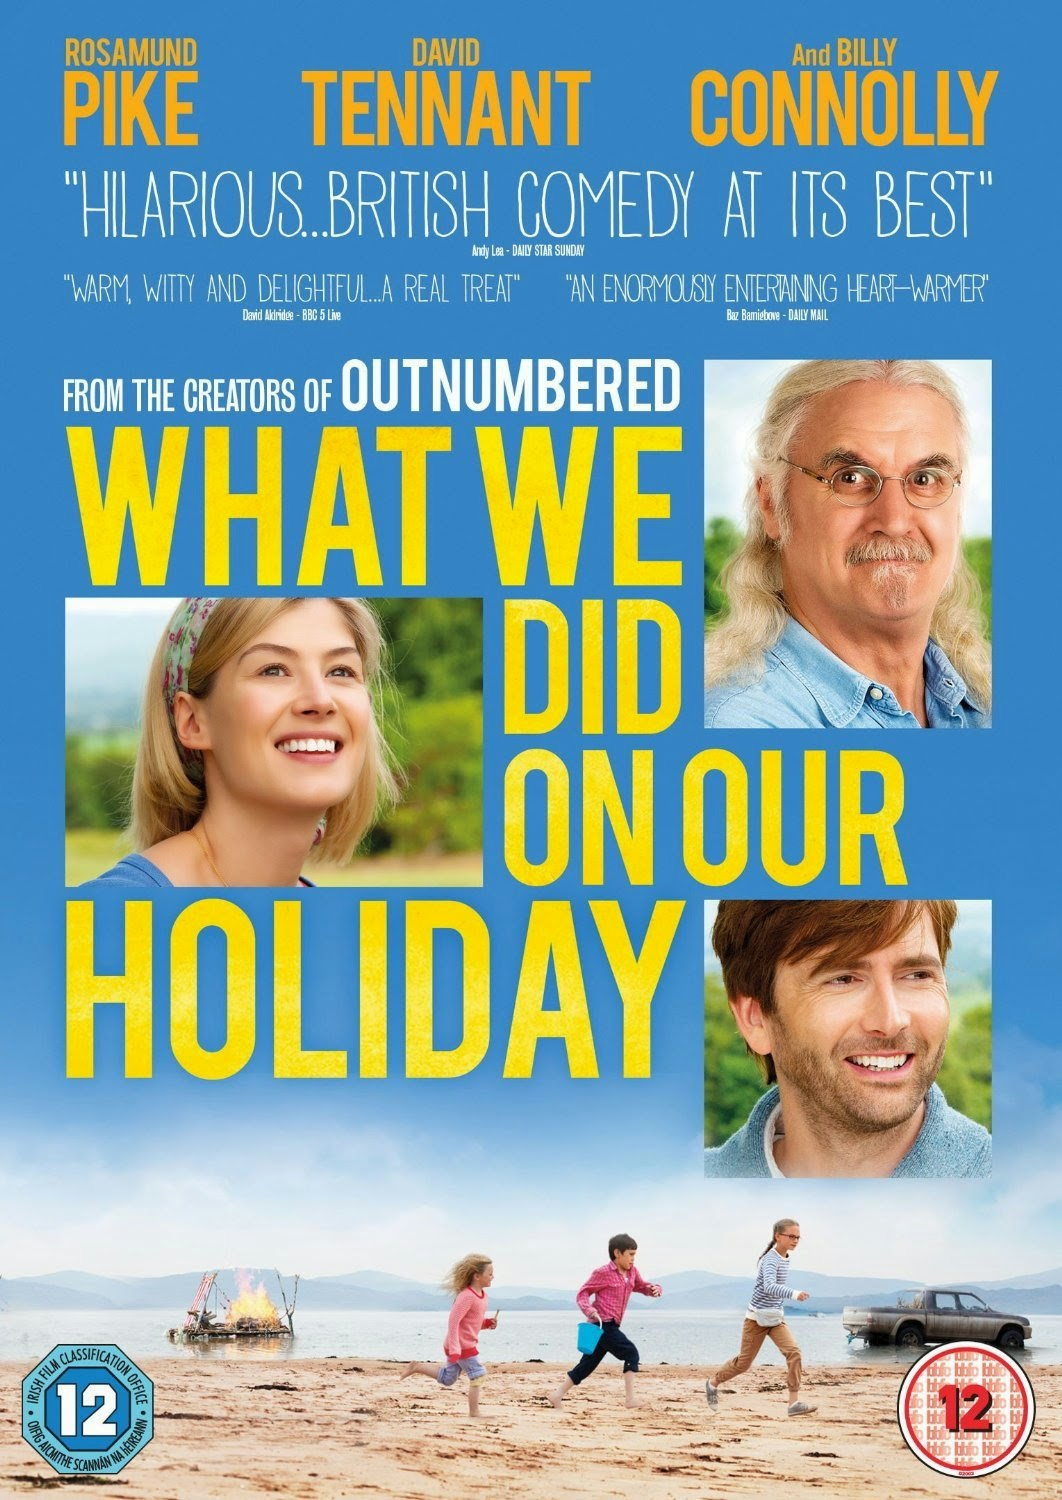 Download - What We Did On Our Holiday  (2015)